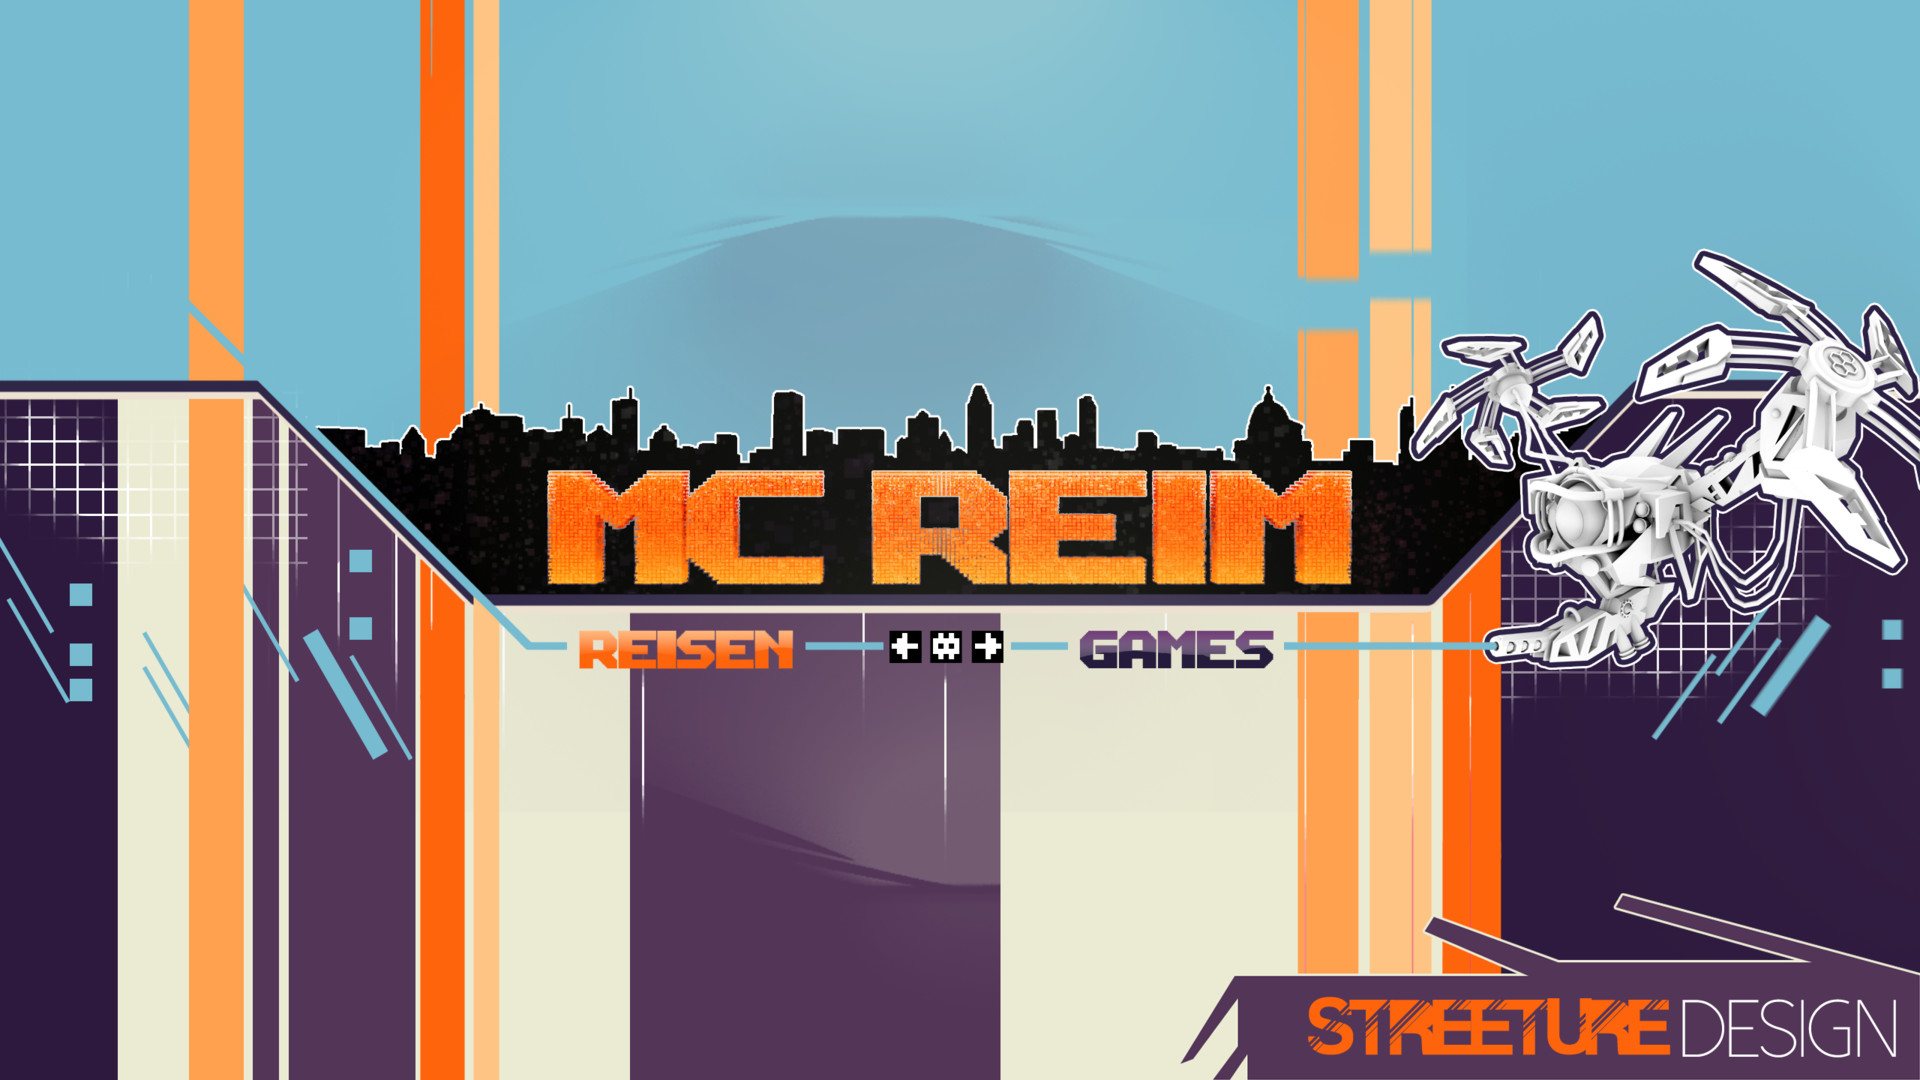 Streeture design youtube channel banner mr